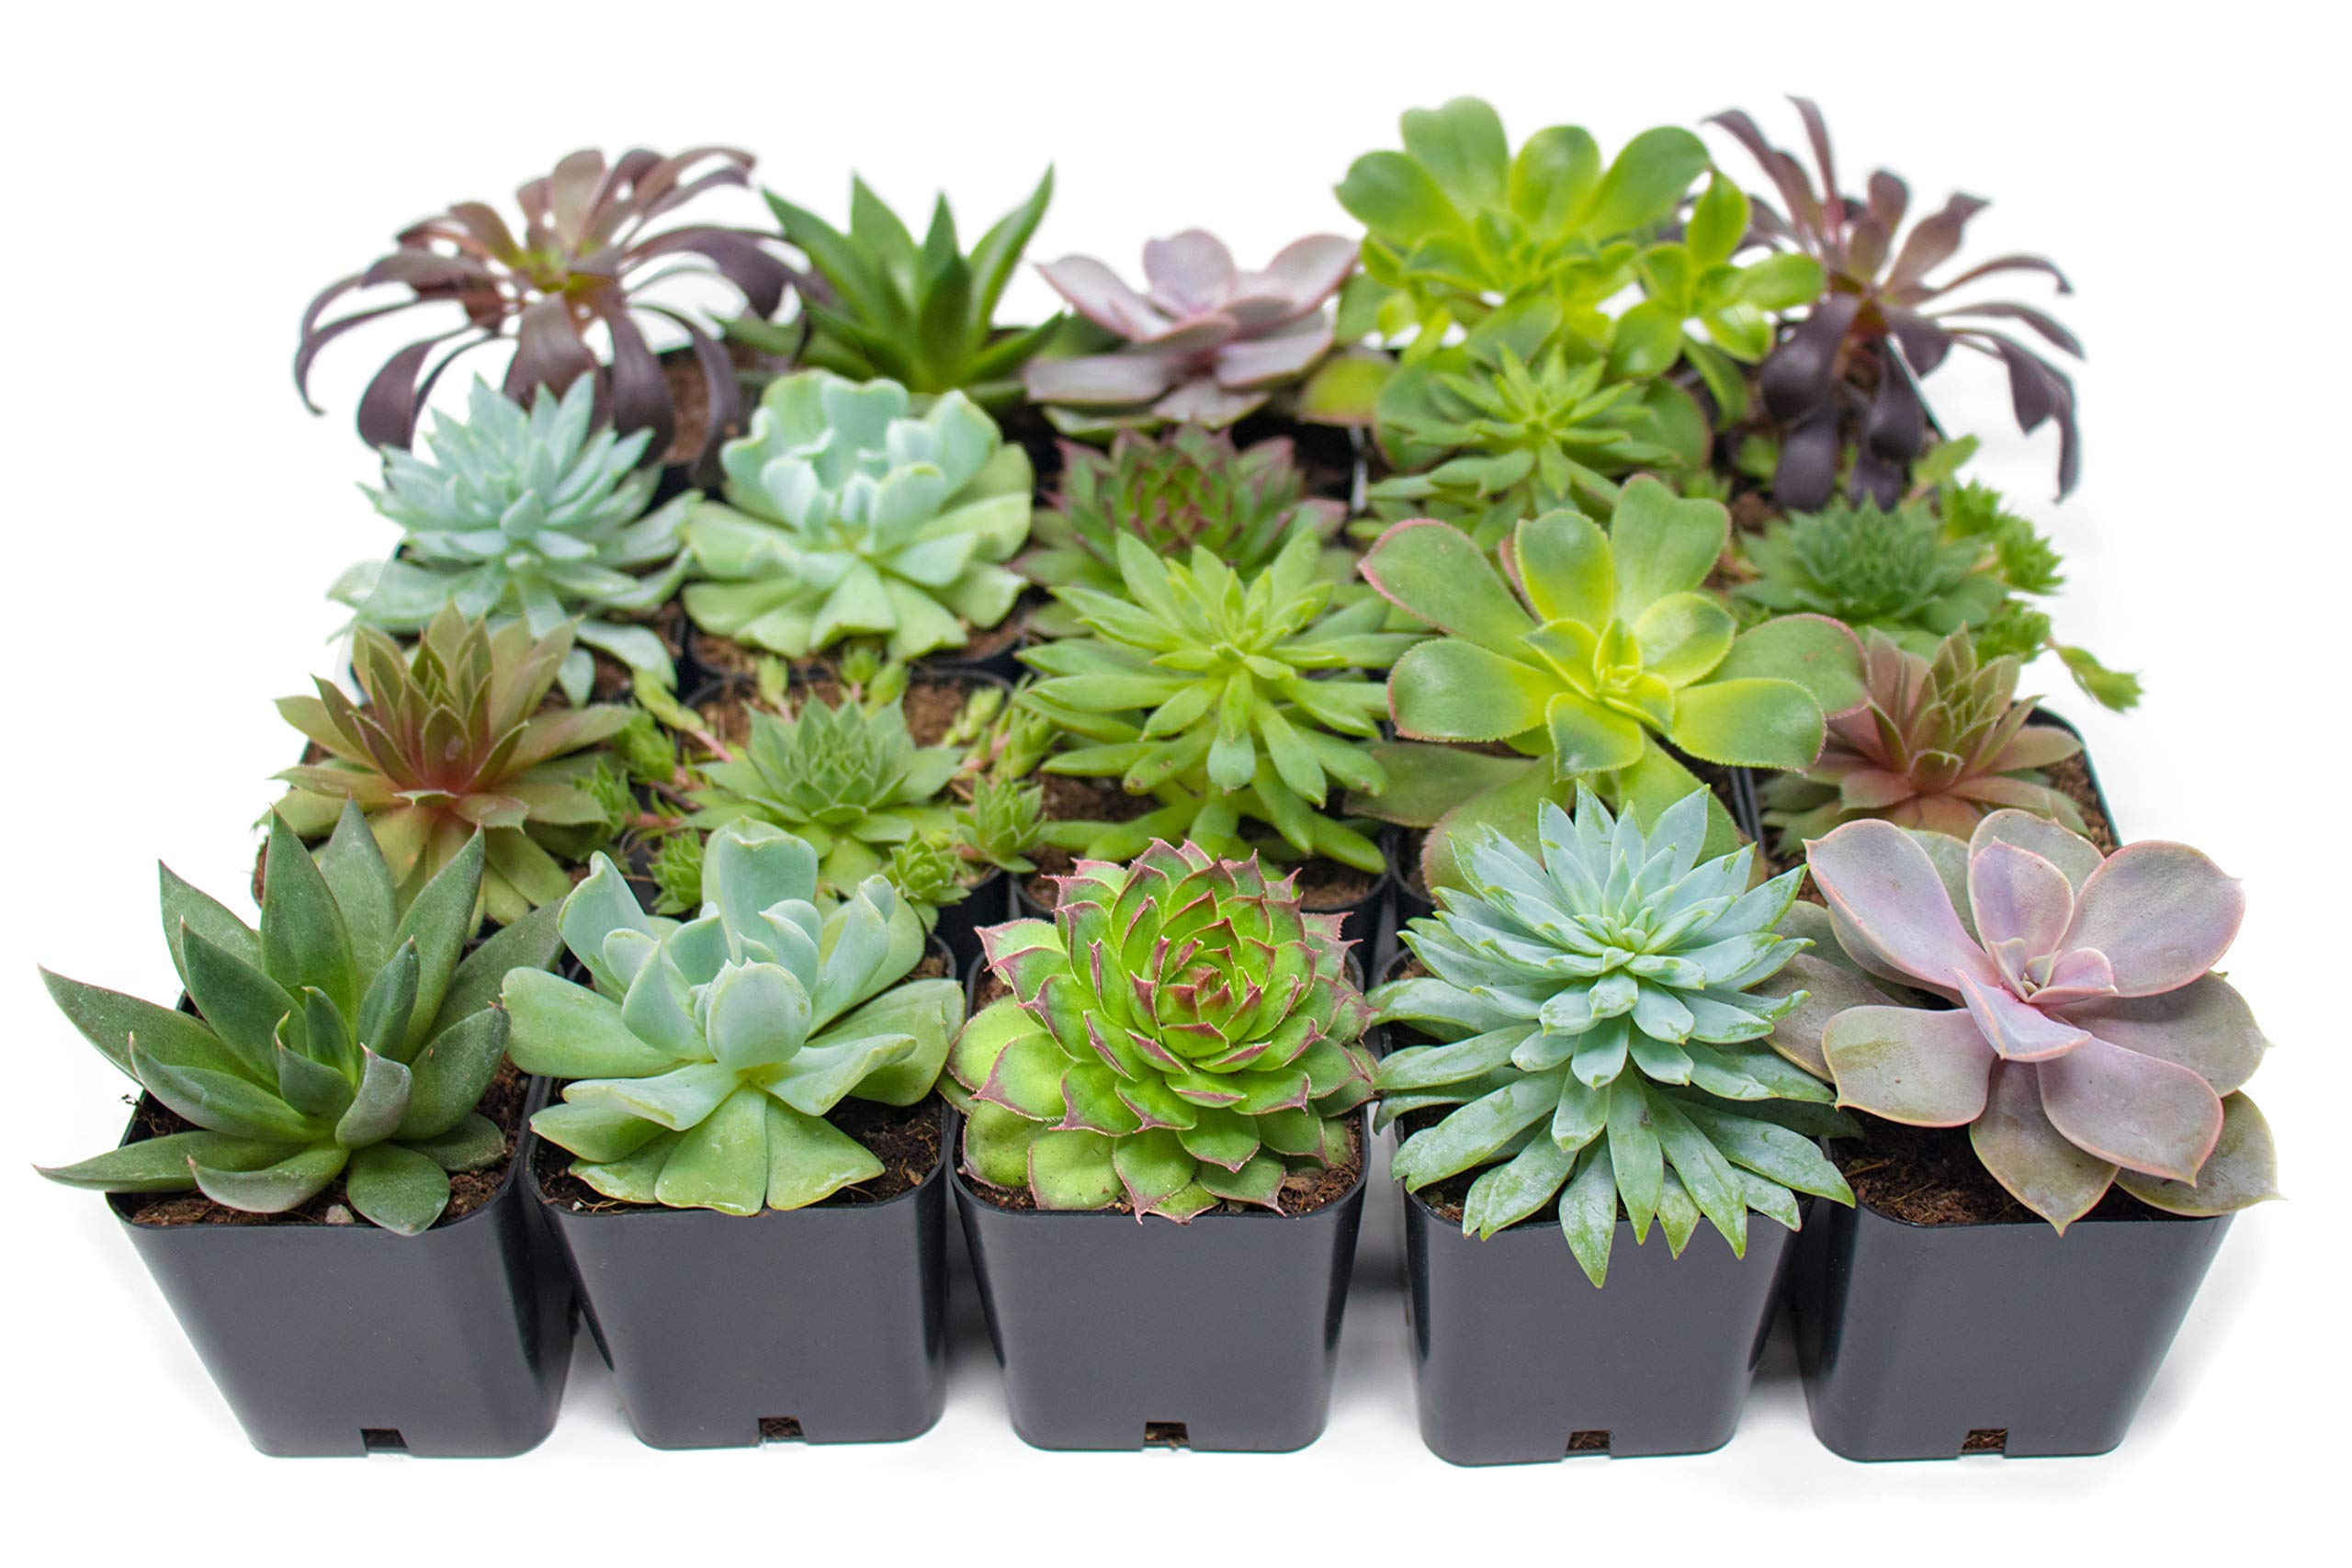 Succulent Plants (20 Pack) Fully Rooted in Planter Pots with Soil | Real Live Potted Succulents / Unique Indoor Cactus Decor by Plants for Pets 2 HAND SELECTED: Every pack of succulents we send is hand-picked. You will receive a unique collection of species that are fully rooted and similar to the product photos. Note that we rotate our nursery stock often, so the exact species we send changes every week. THE EASIEST HOUSE PLANTS: More appealing than artificial plastic or fake faux plants, and care is a cinch. If you think you can't keep houseplants alive, you're wrong; our succulents don't require fertilizer and can be planted in a decorative pot of your choice within seconds. DIY HOME DECOR: The possibilities are only limited by your imagination; display them in a plant holder, a wall mount, a geometric glass vase, or even in a live wreath. Because of their amazingly low care requirements, they can even make the perfect desk centerpiece for your office.